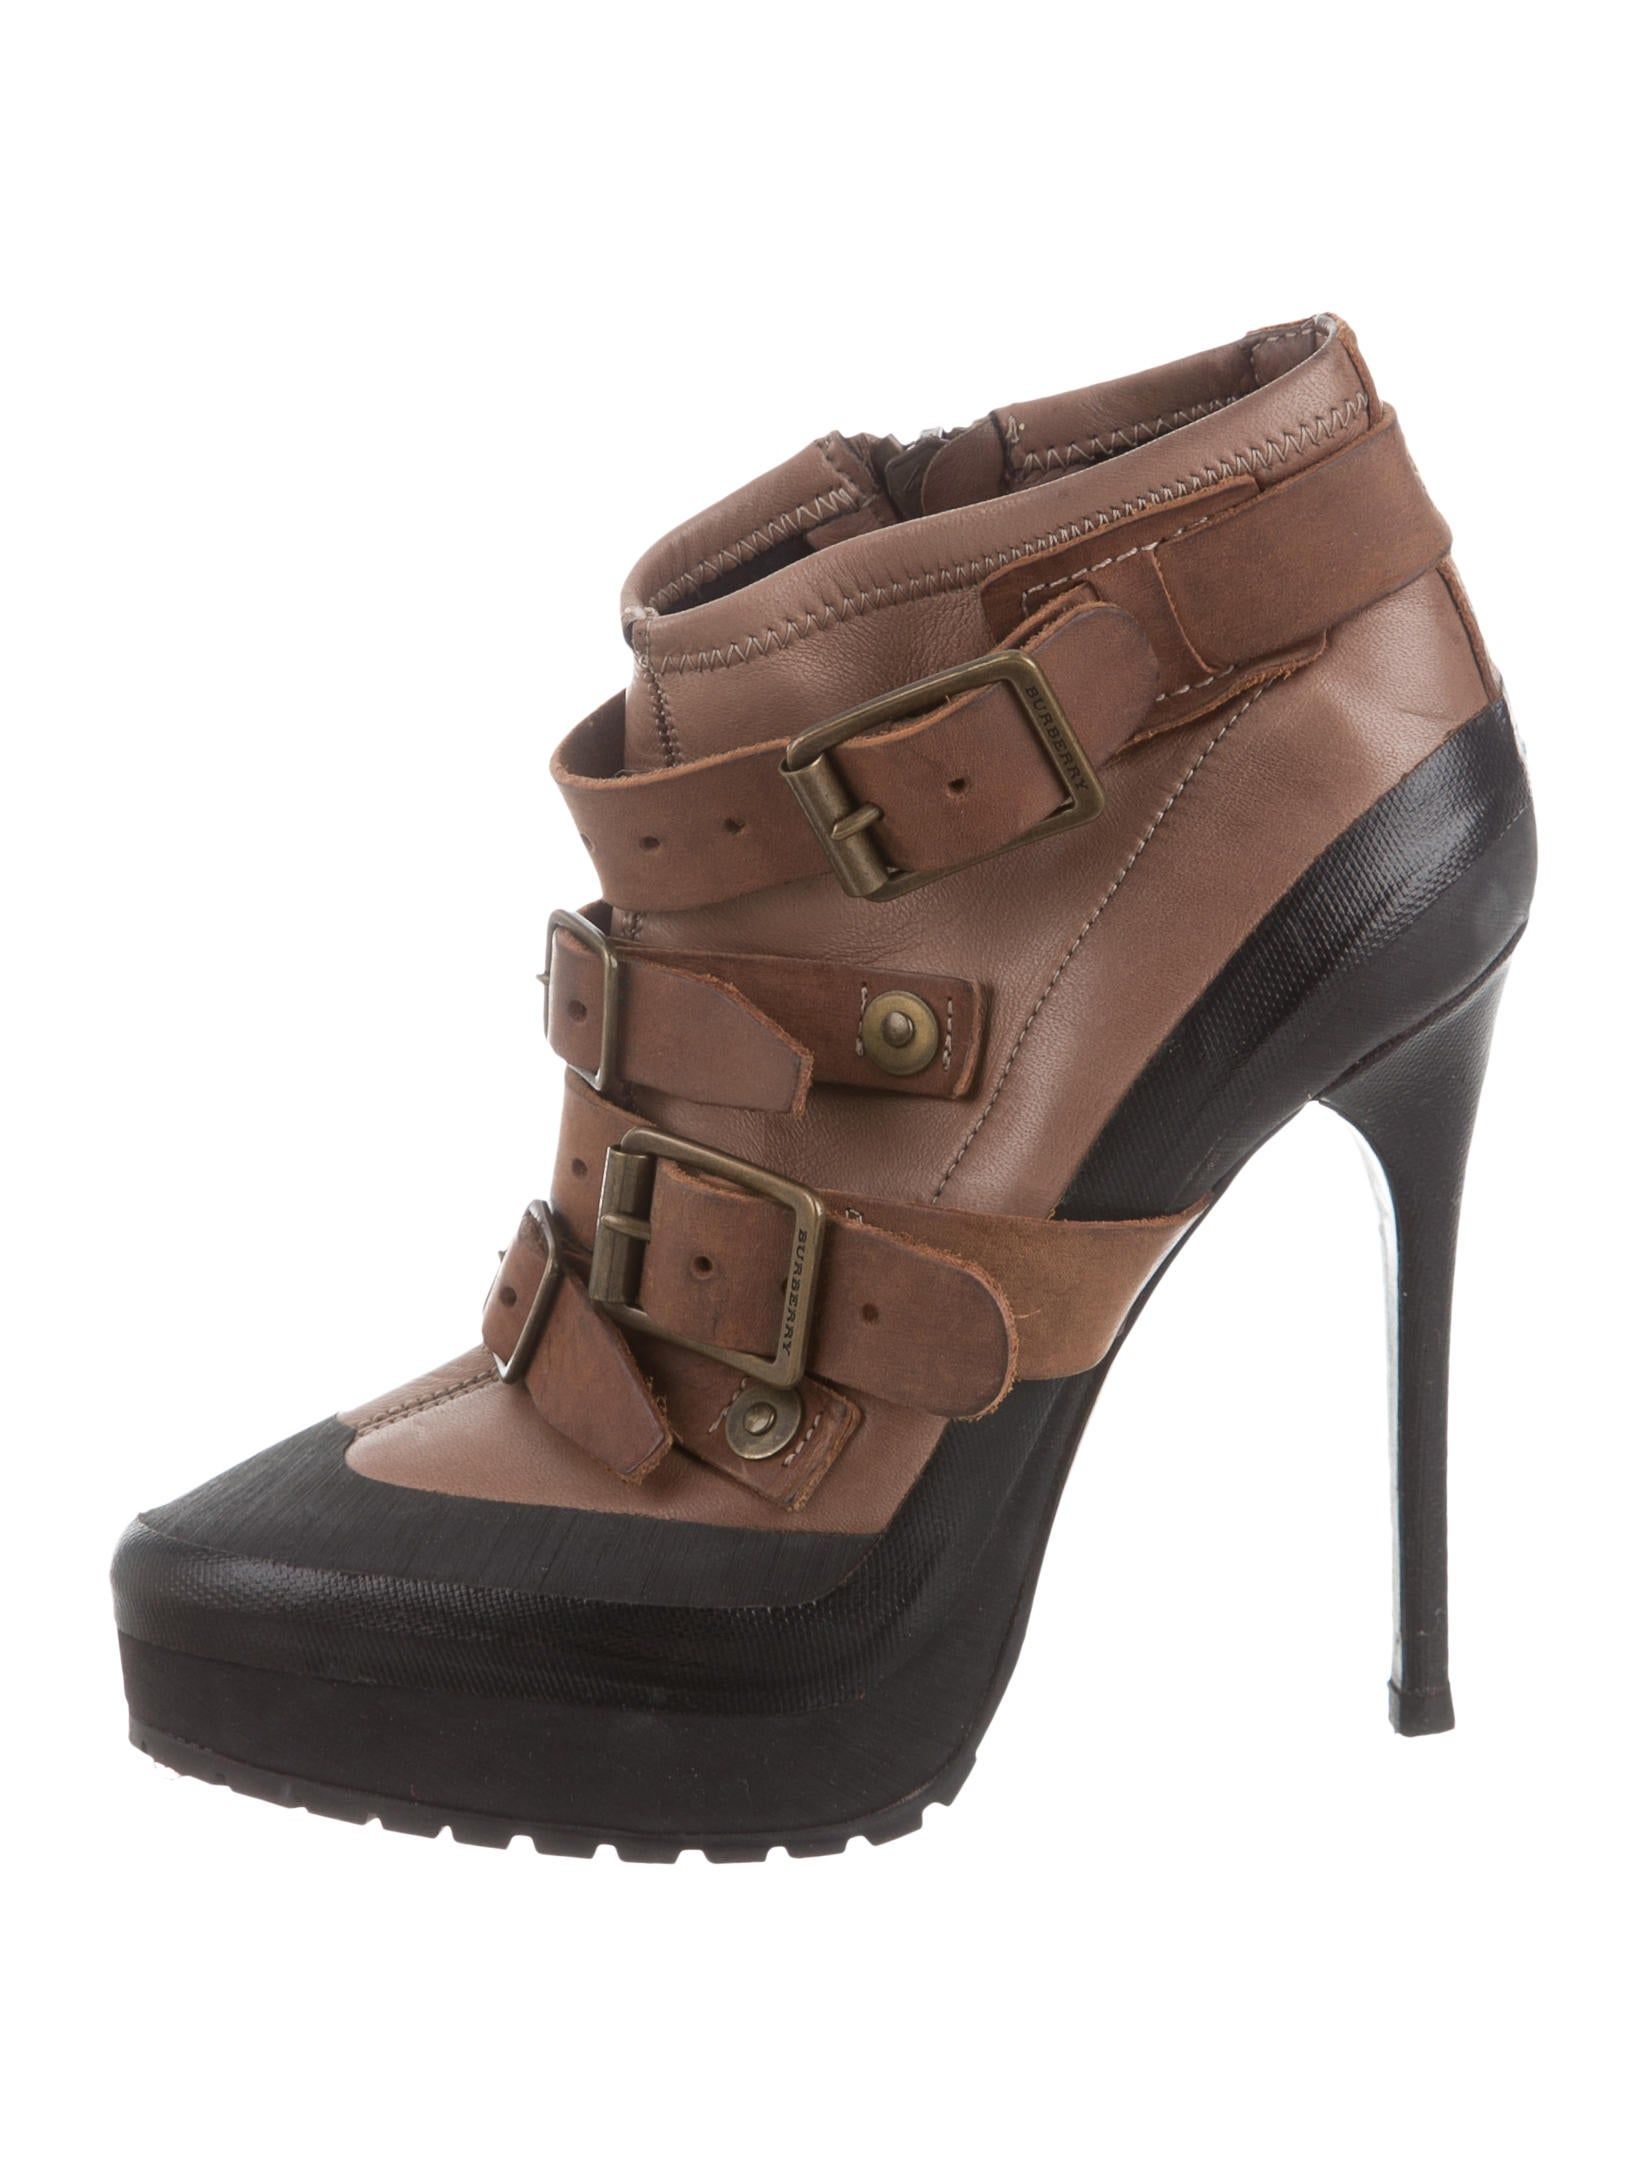 Women's Short & Mid Calf Boots. Shop Payless to find the perfect pair of women's mid calf boots you have been searching for. We carry women's short boots in all sizes and styles. Sort By: Go. Showing 29 Results Sale! Women's Samika Peep-Toe Boot Short Boots for Women.